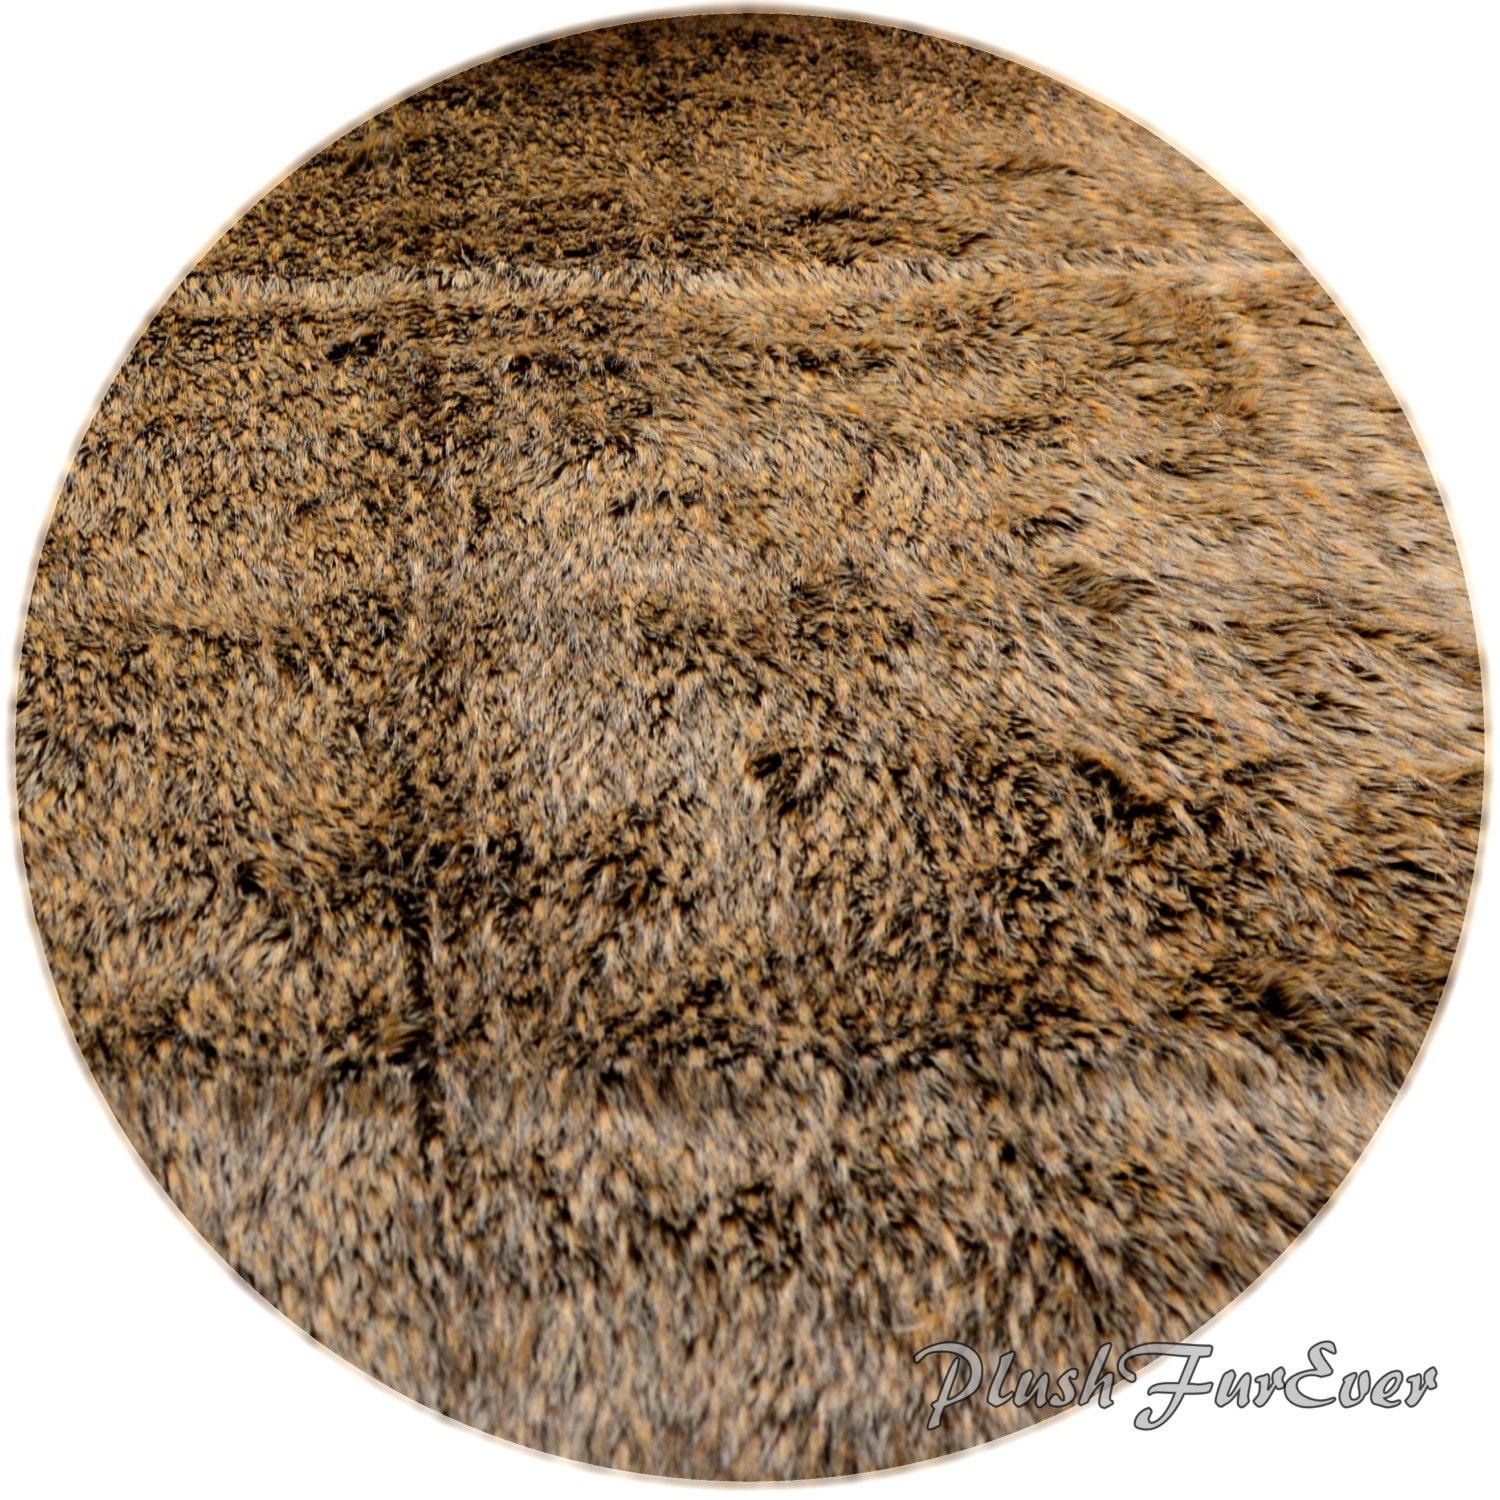 New Grizzly Bear Round Faux Fur Rug Nonslip Suede Backing